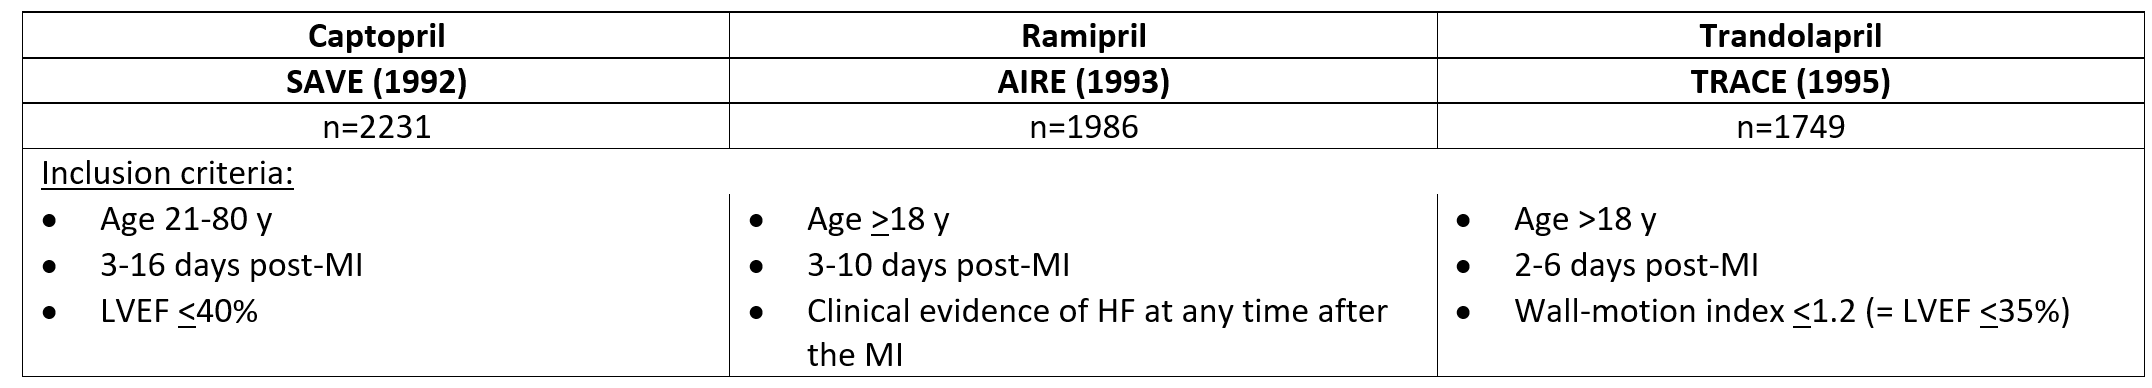 3 trials enrolled patients early after an MI if they had either clinical HF (AIRE) or reduced LVEF (SAVE, TRACE) for enrolment